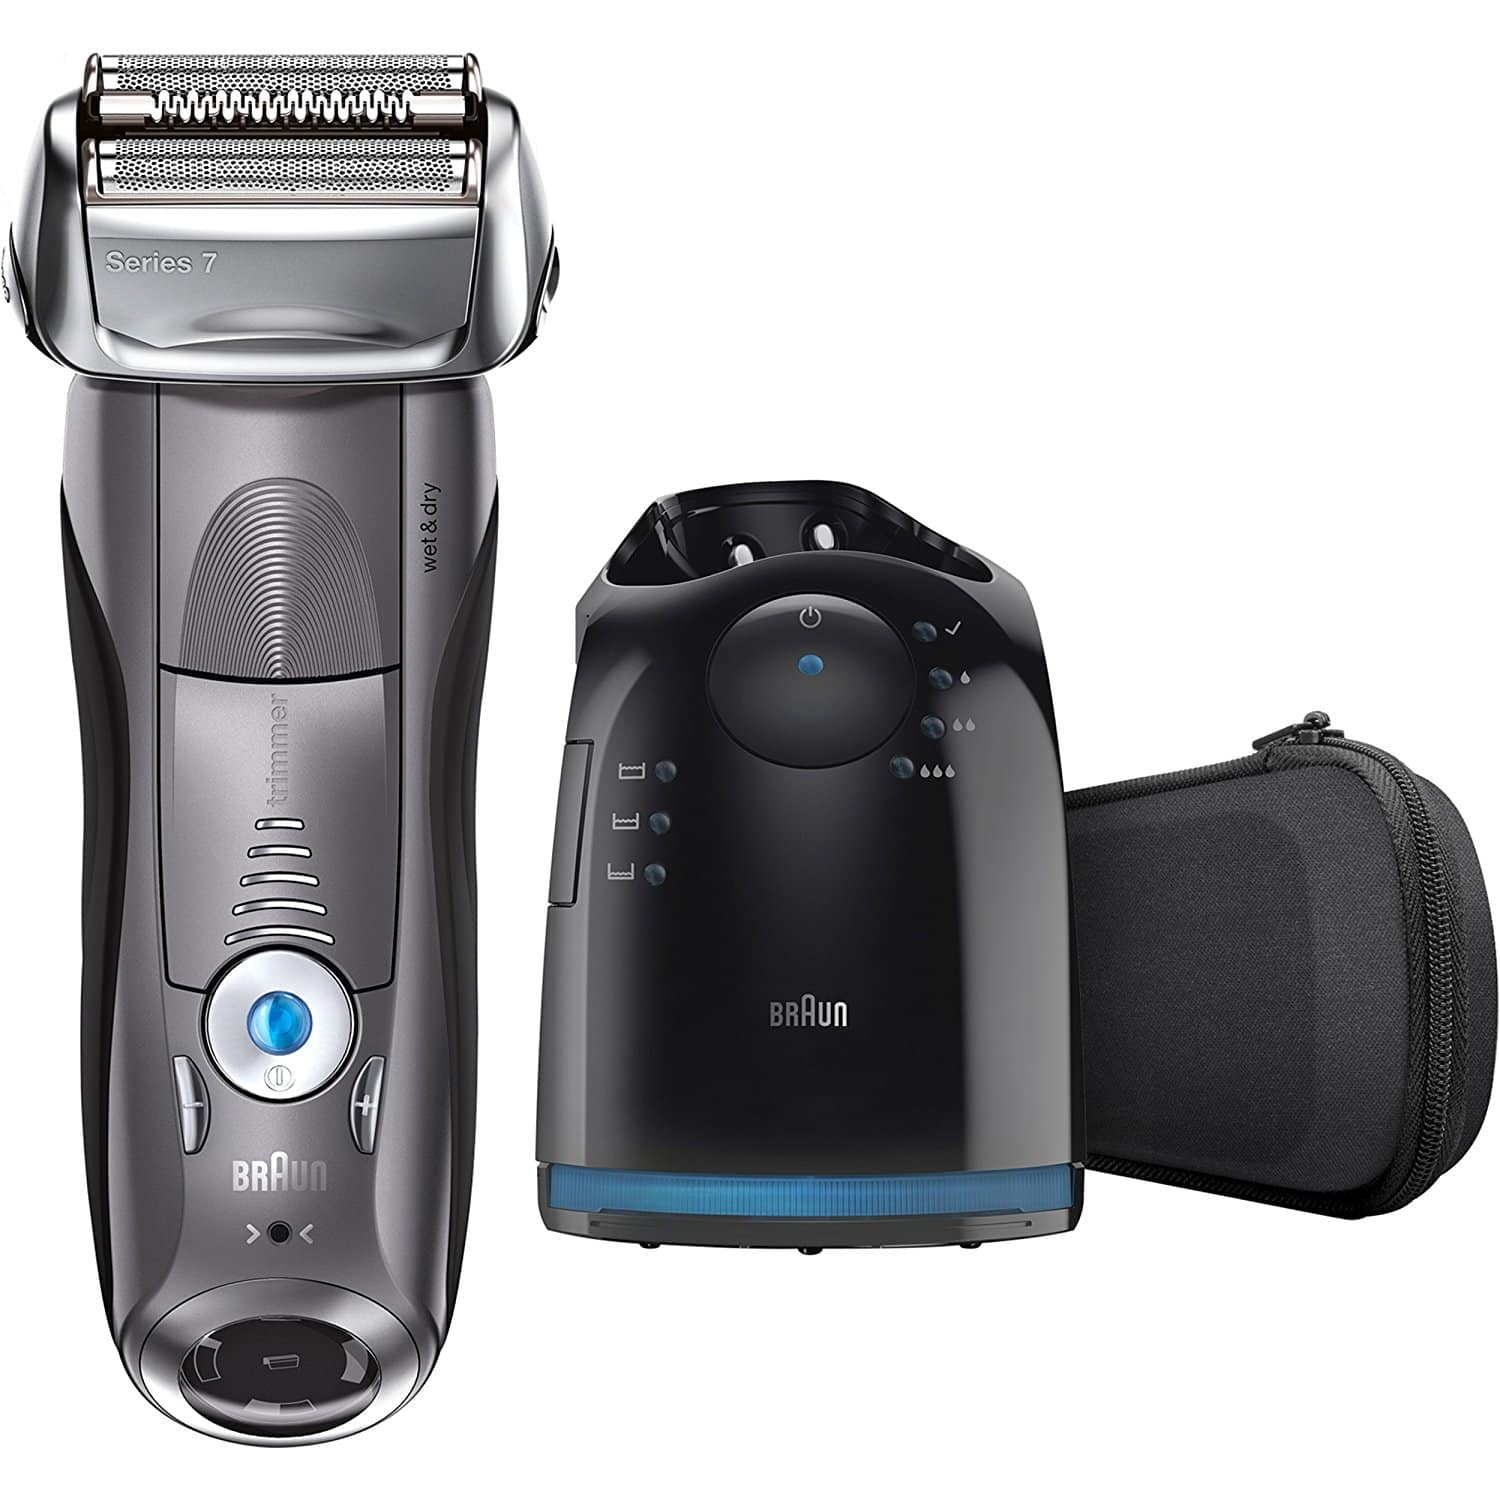 Braun Electric Shaver, Series 7 790cc $  99.94 after $  40 coupon +$  30 rebate , Series 9  for $  149.94 after $  50 coupon+ $  50 rebate $  99.94